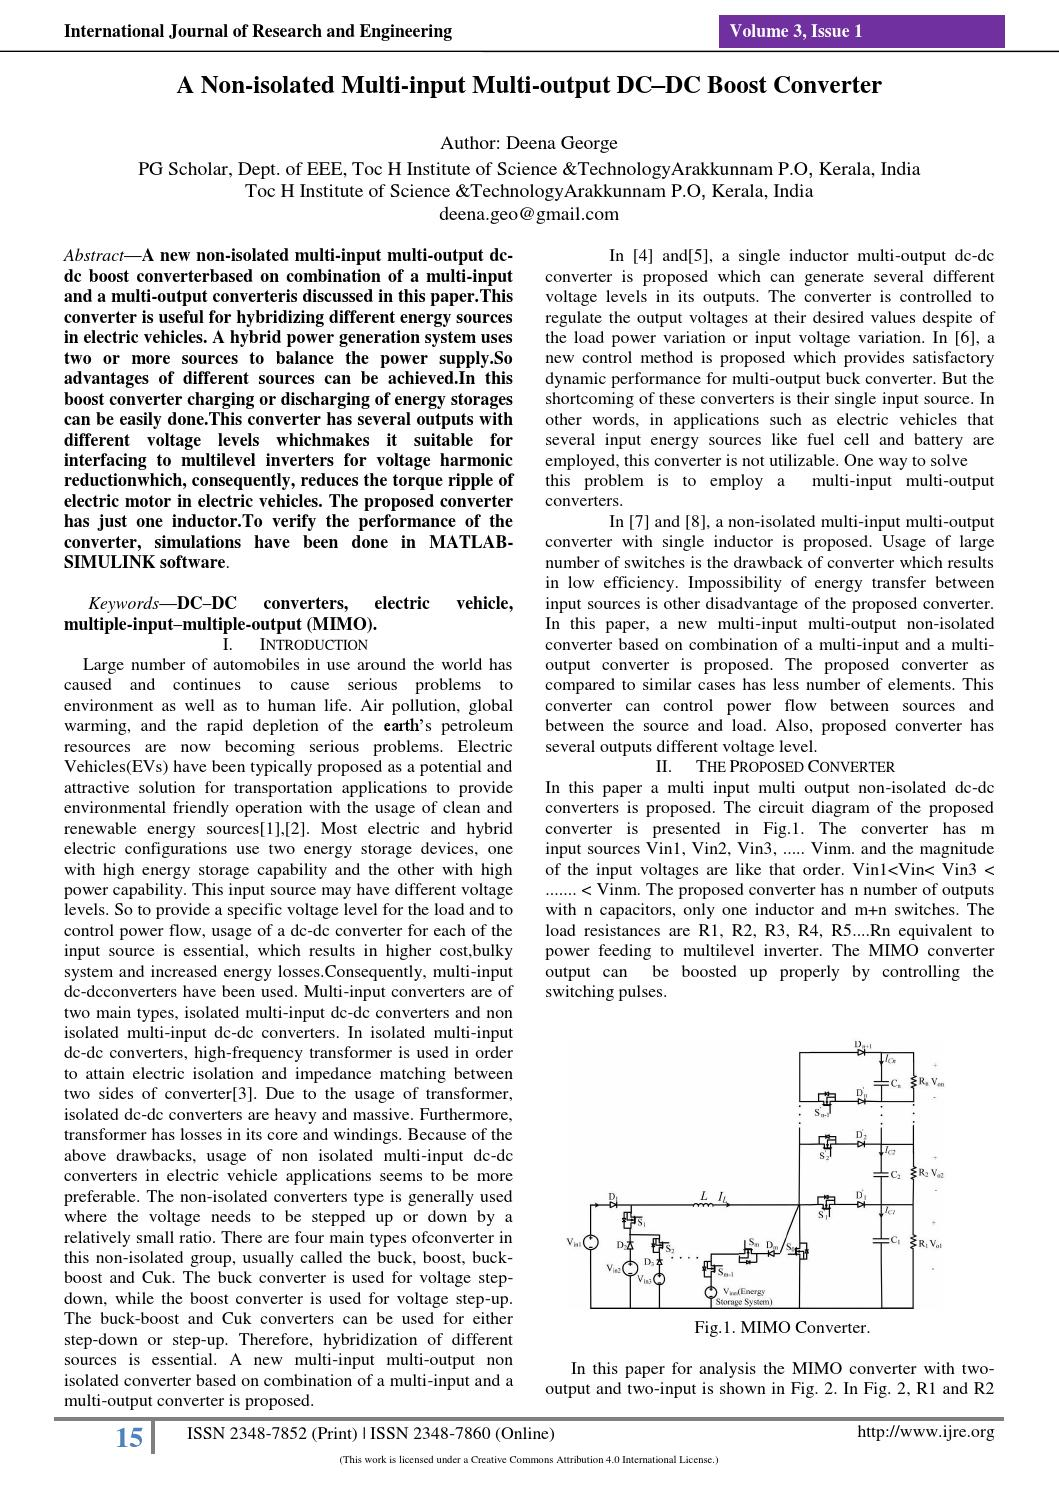 Ijre 4 A Non Isolated Multi Input Output Dc Boost Converter To V3i1 3114 By International Journal Of Research And Engineering Issuu